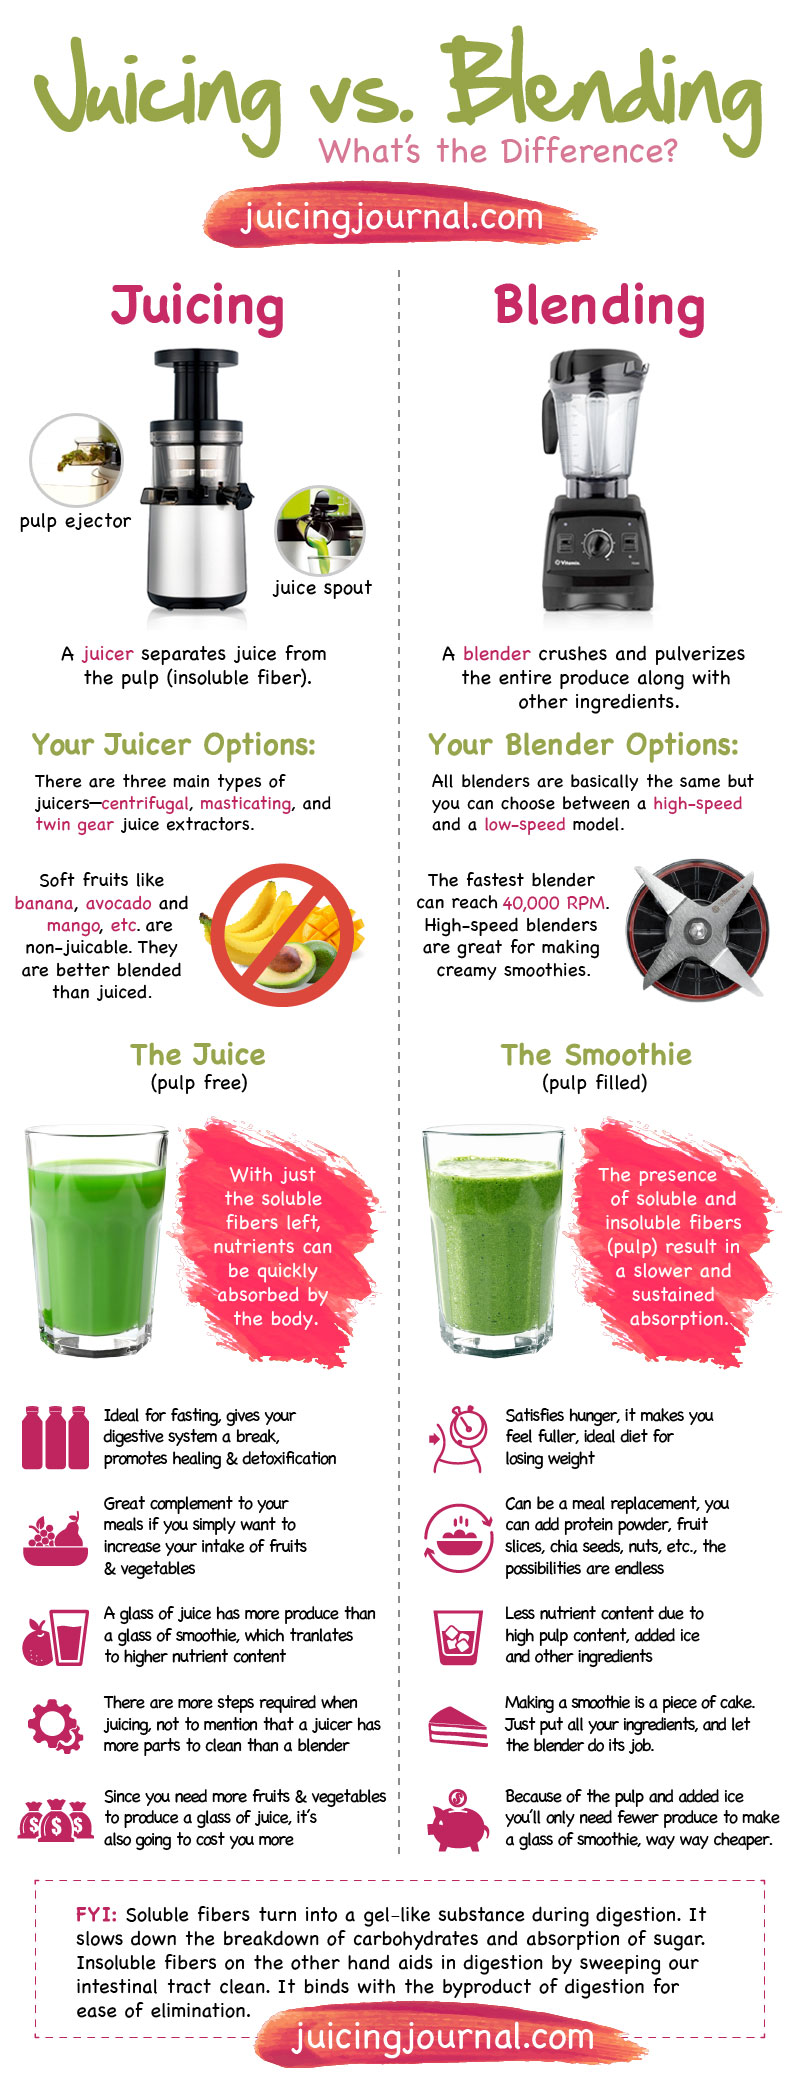 Juicing vs Blending Infographic